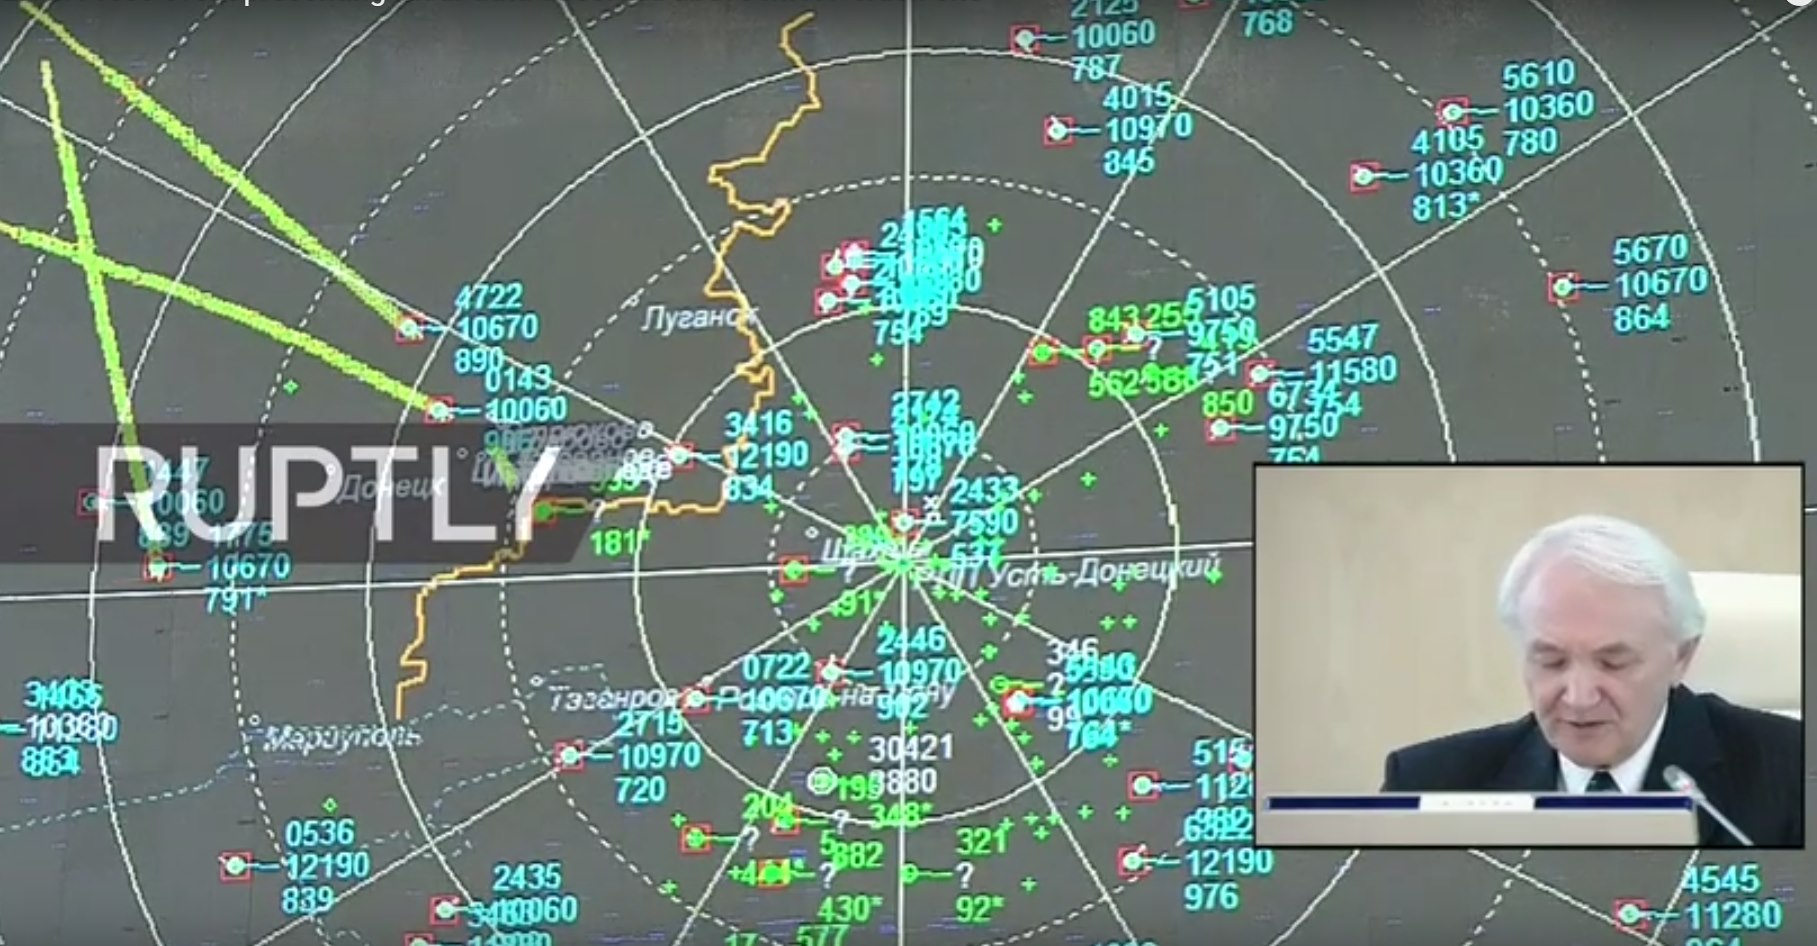 Russia Says Radar Data Shows No Missile Attack on MH17 from Rebel Side